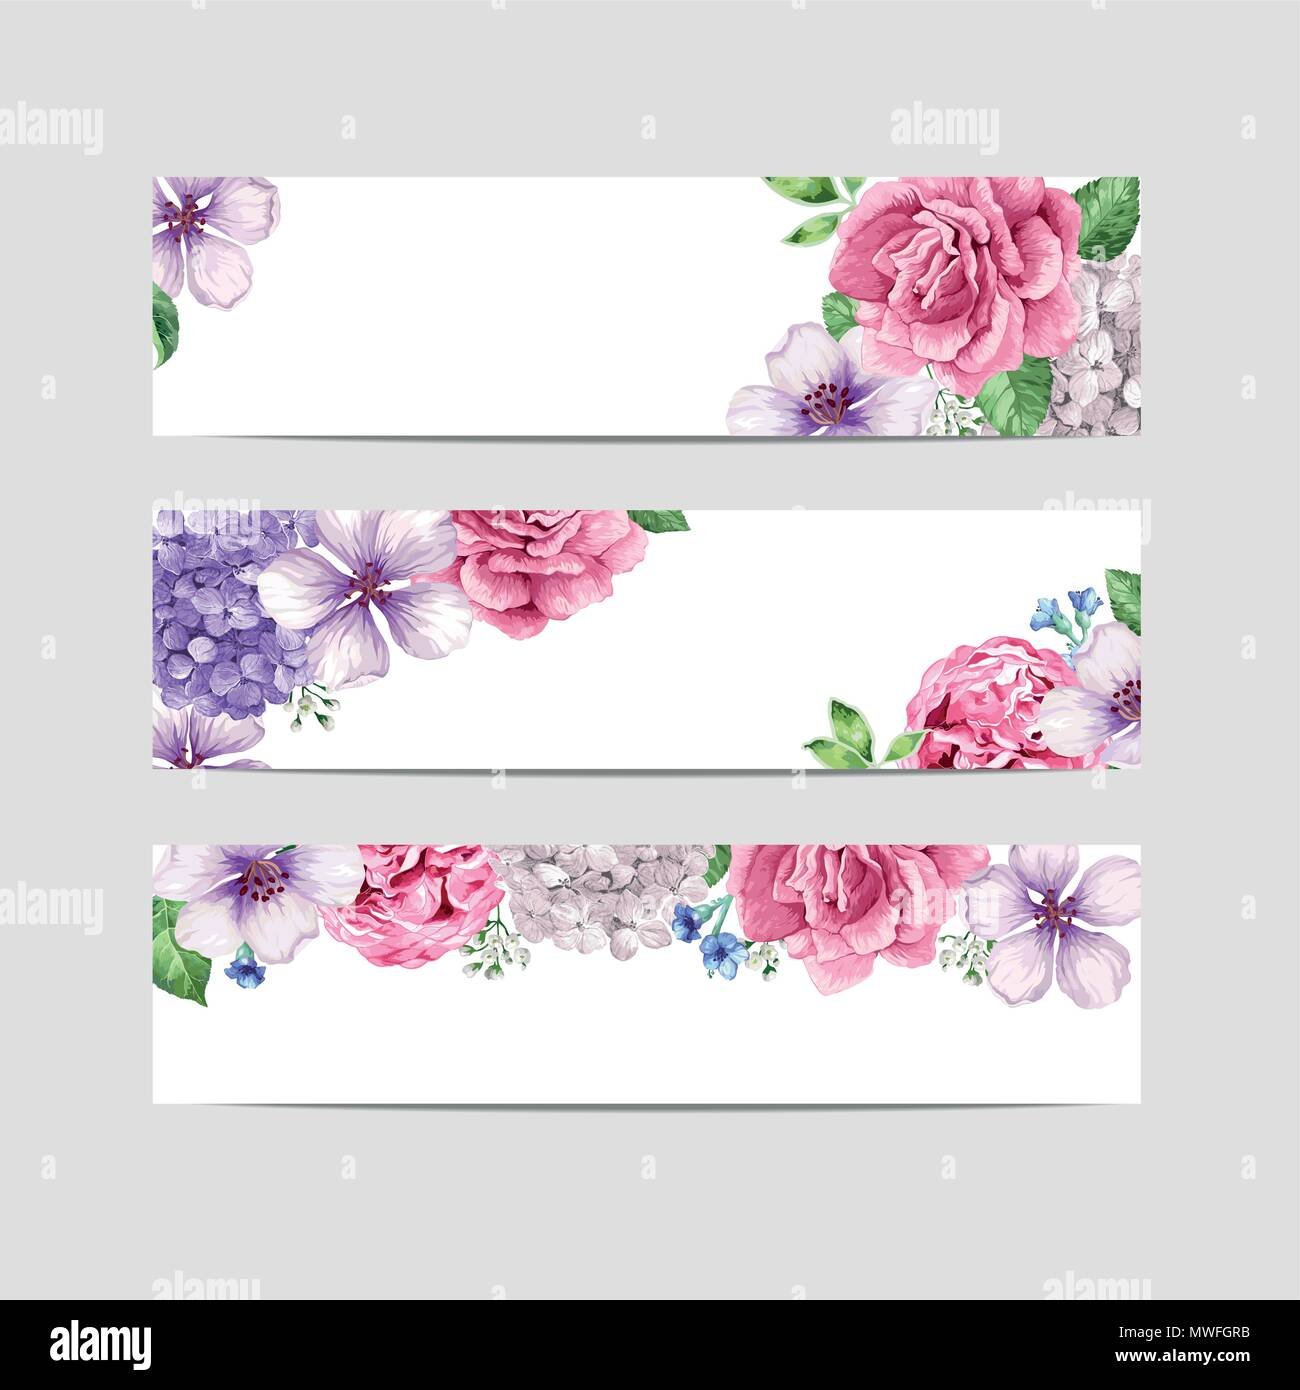 floral banner template flowers in watercolor style isolated on